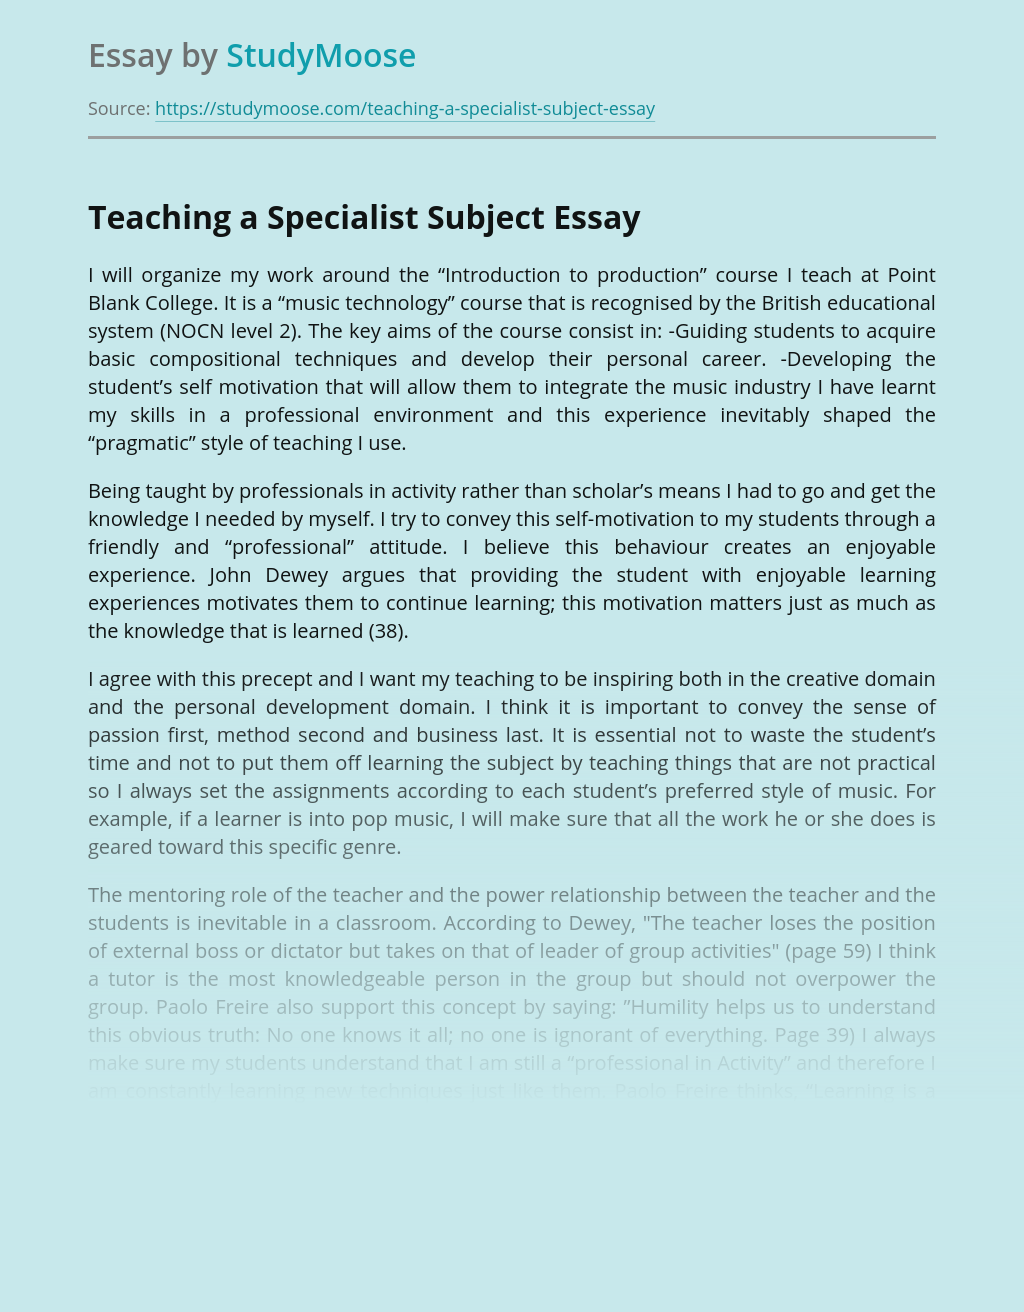 Teaching a Specialist Subject